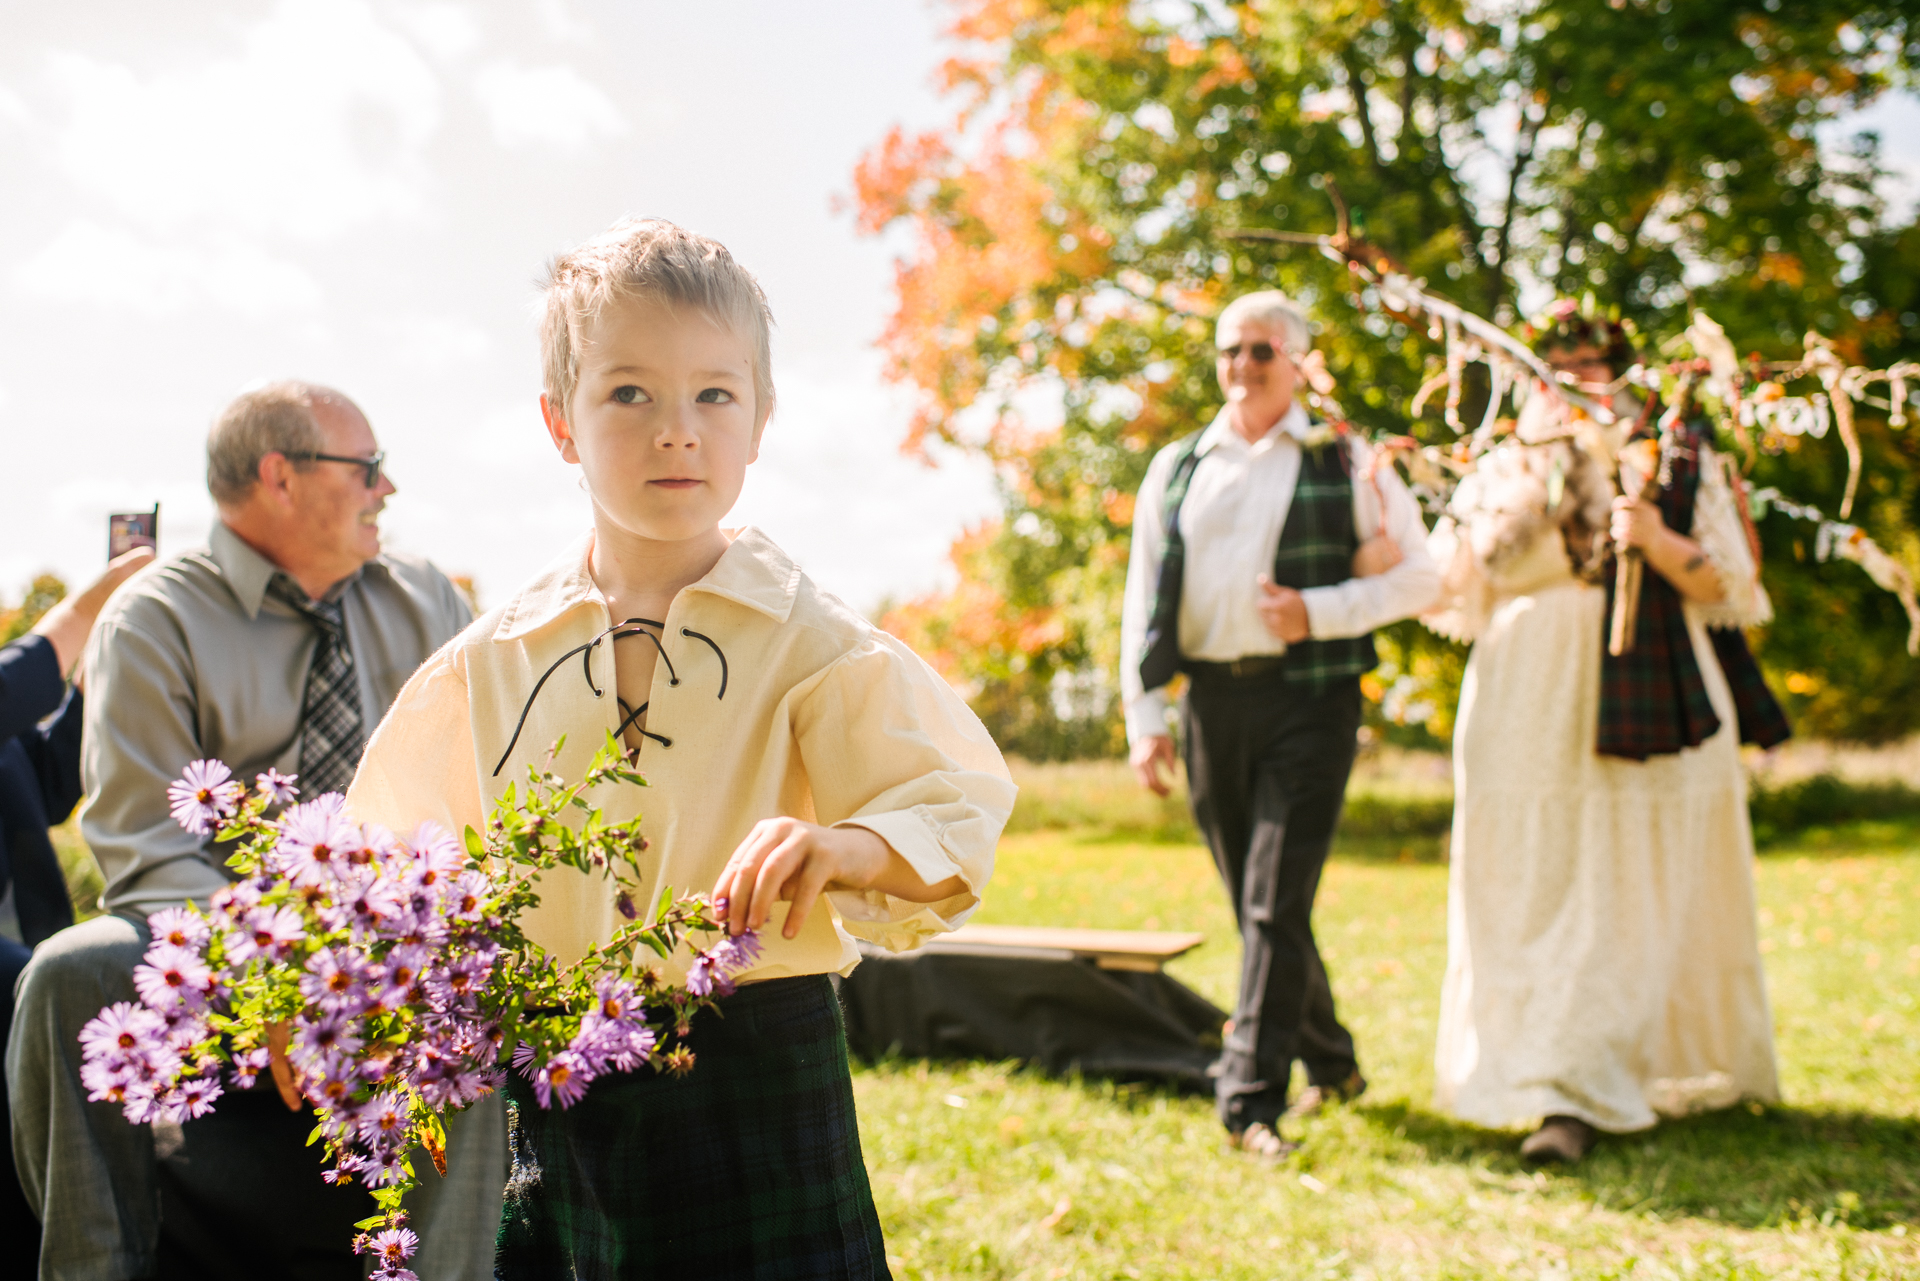 The Bee Spot Family Farm Weddings - Tamworth, Ontario Ceremonie Foto | De zoon van het echtpaar was ook de bloemendrager